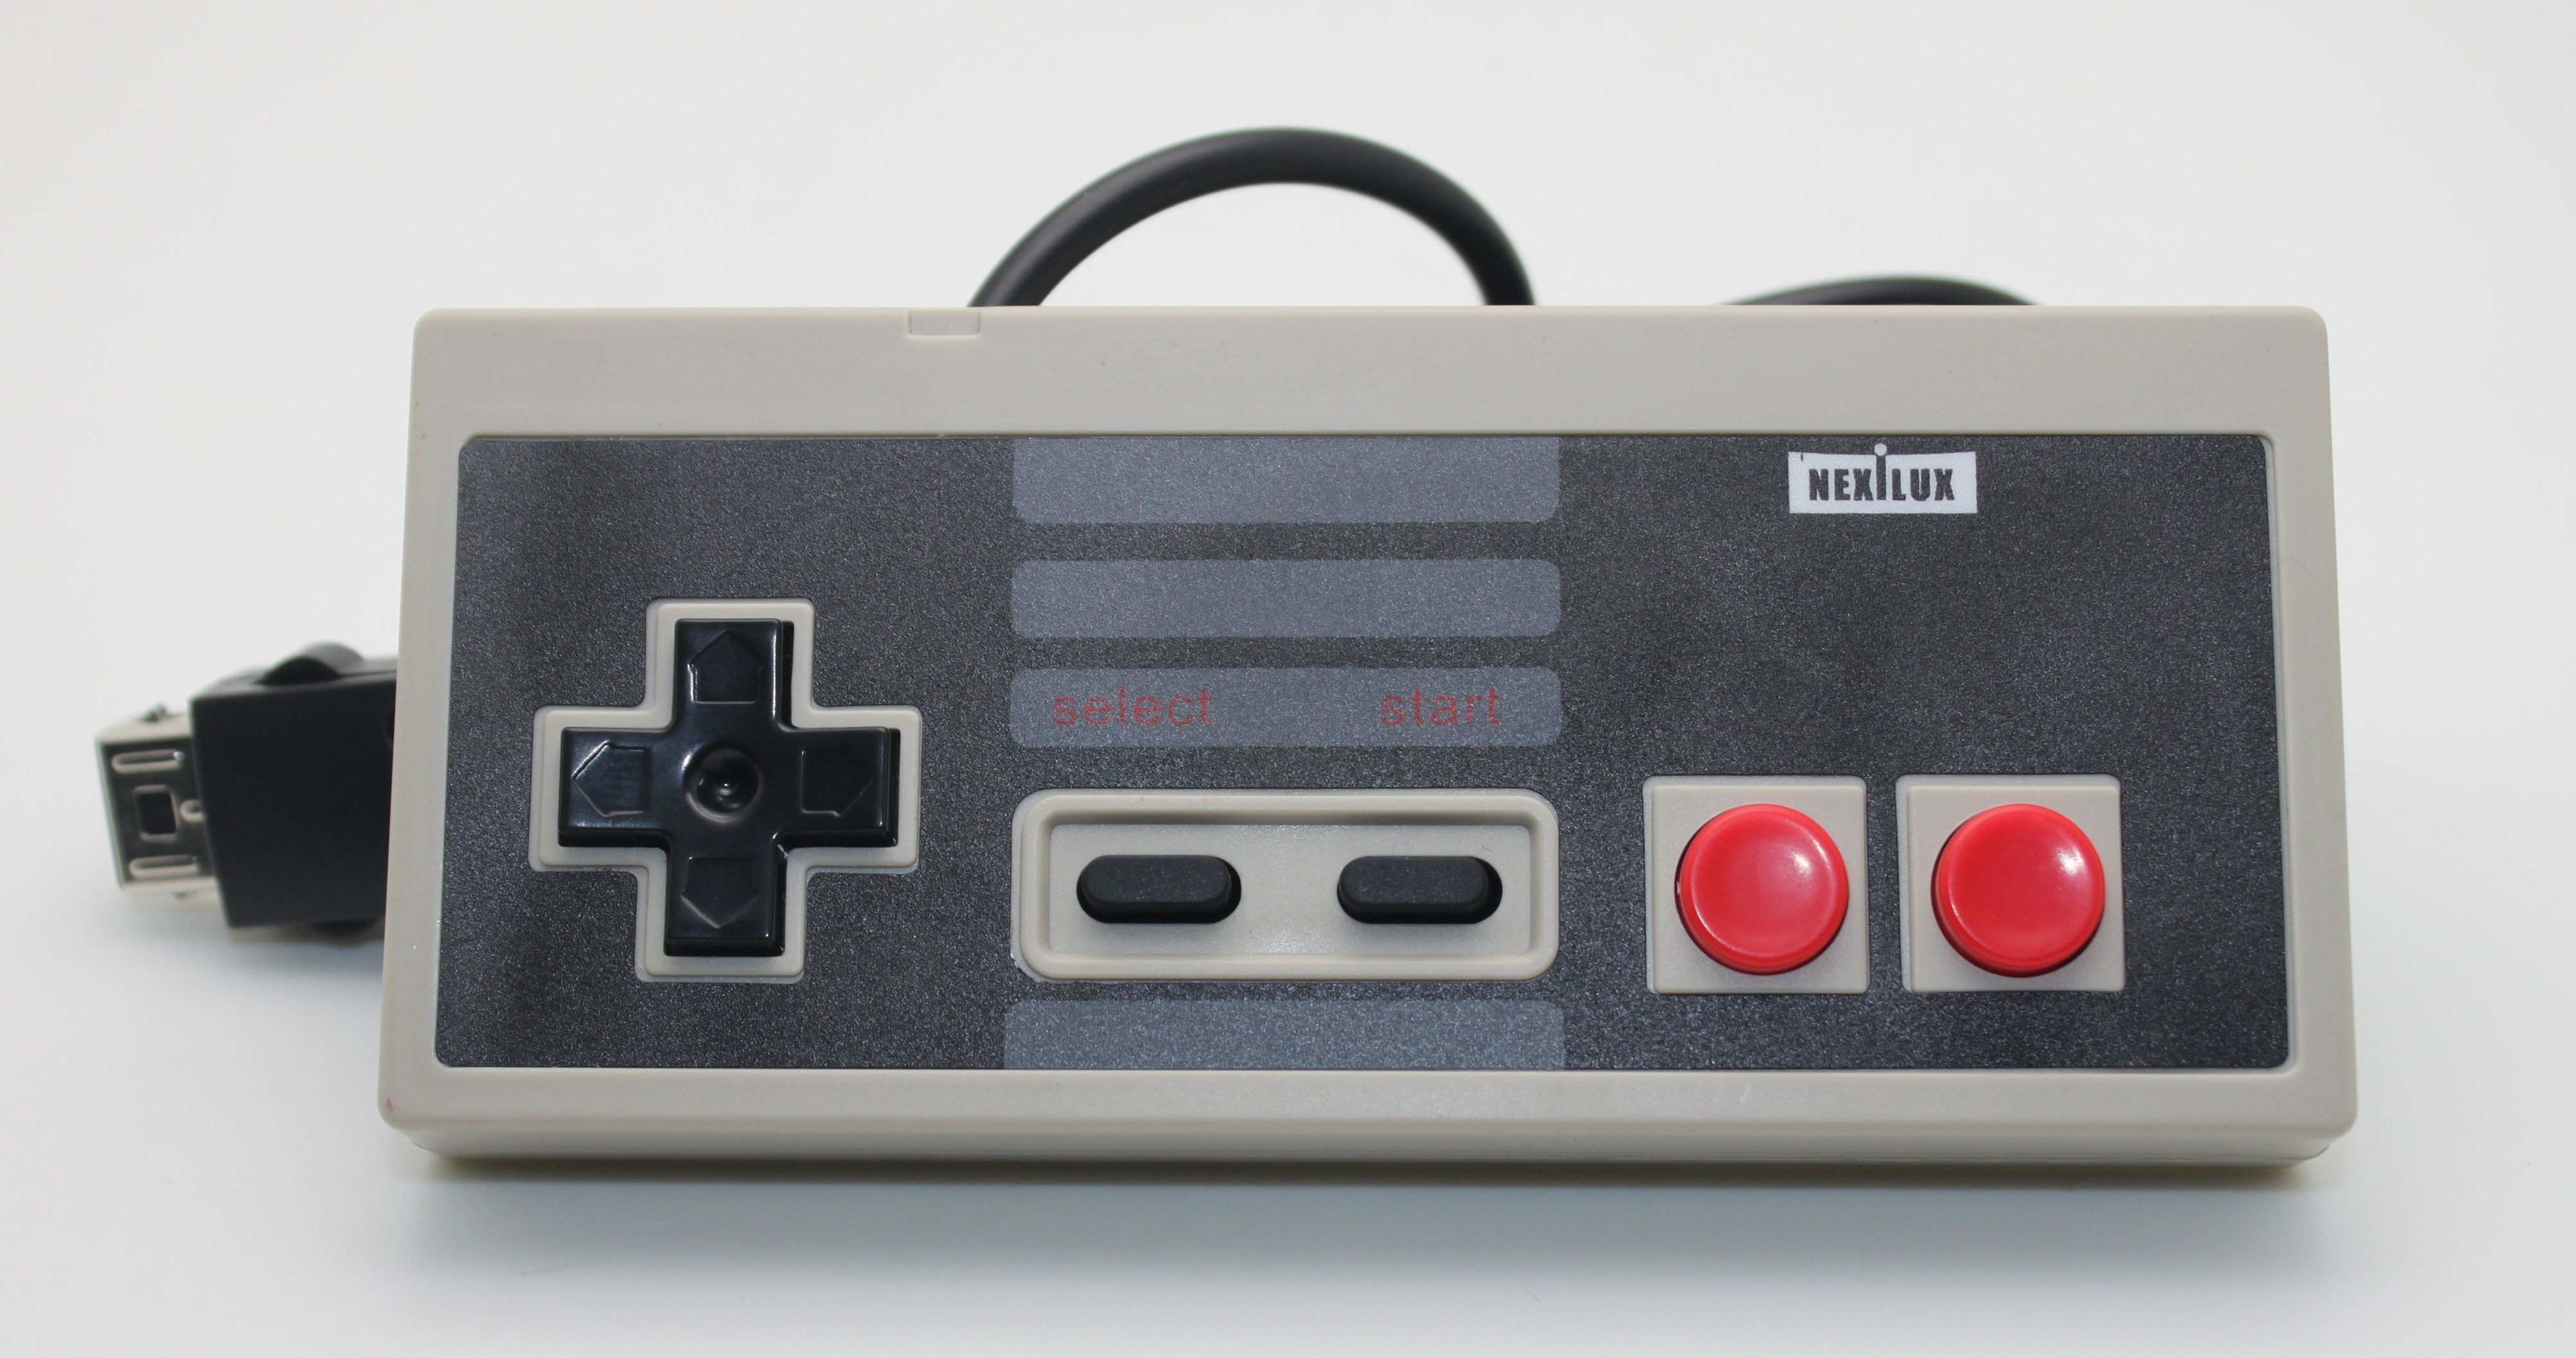 NEXiLUX NES Classic Controller for NES CLassic Edition with long cable